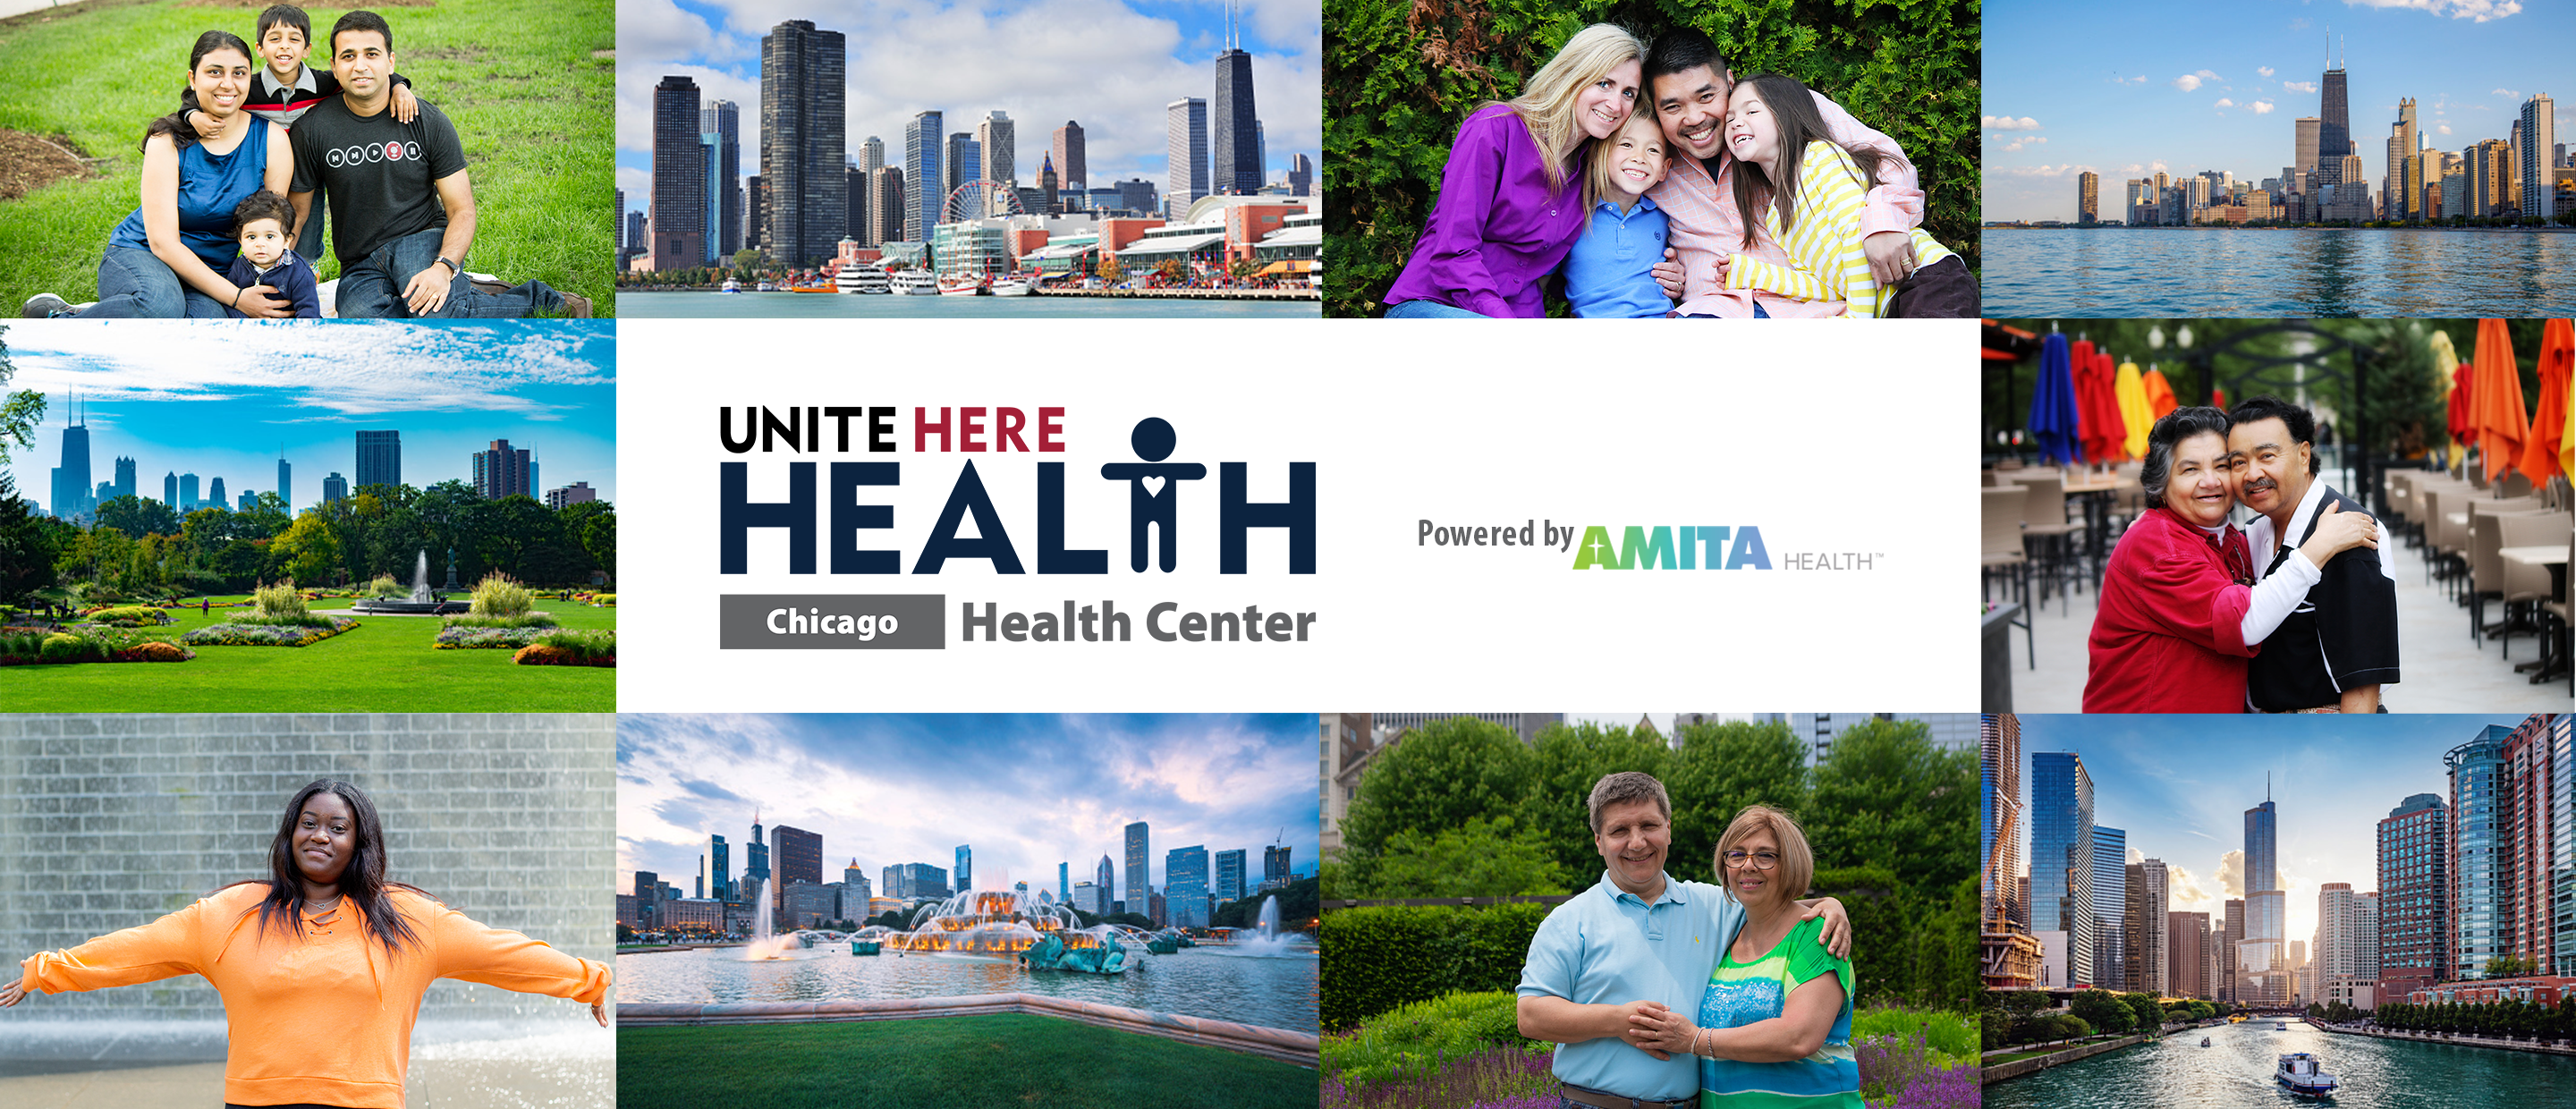 ChicagoHealthCenter